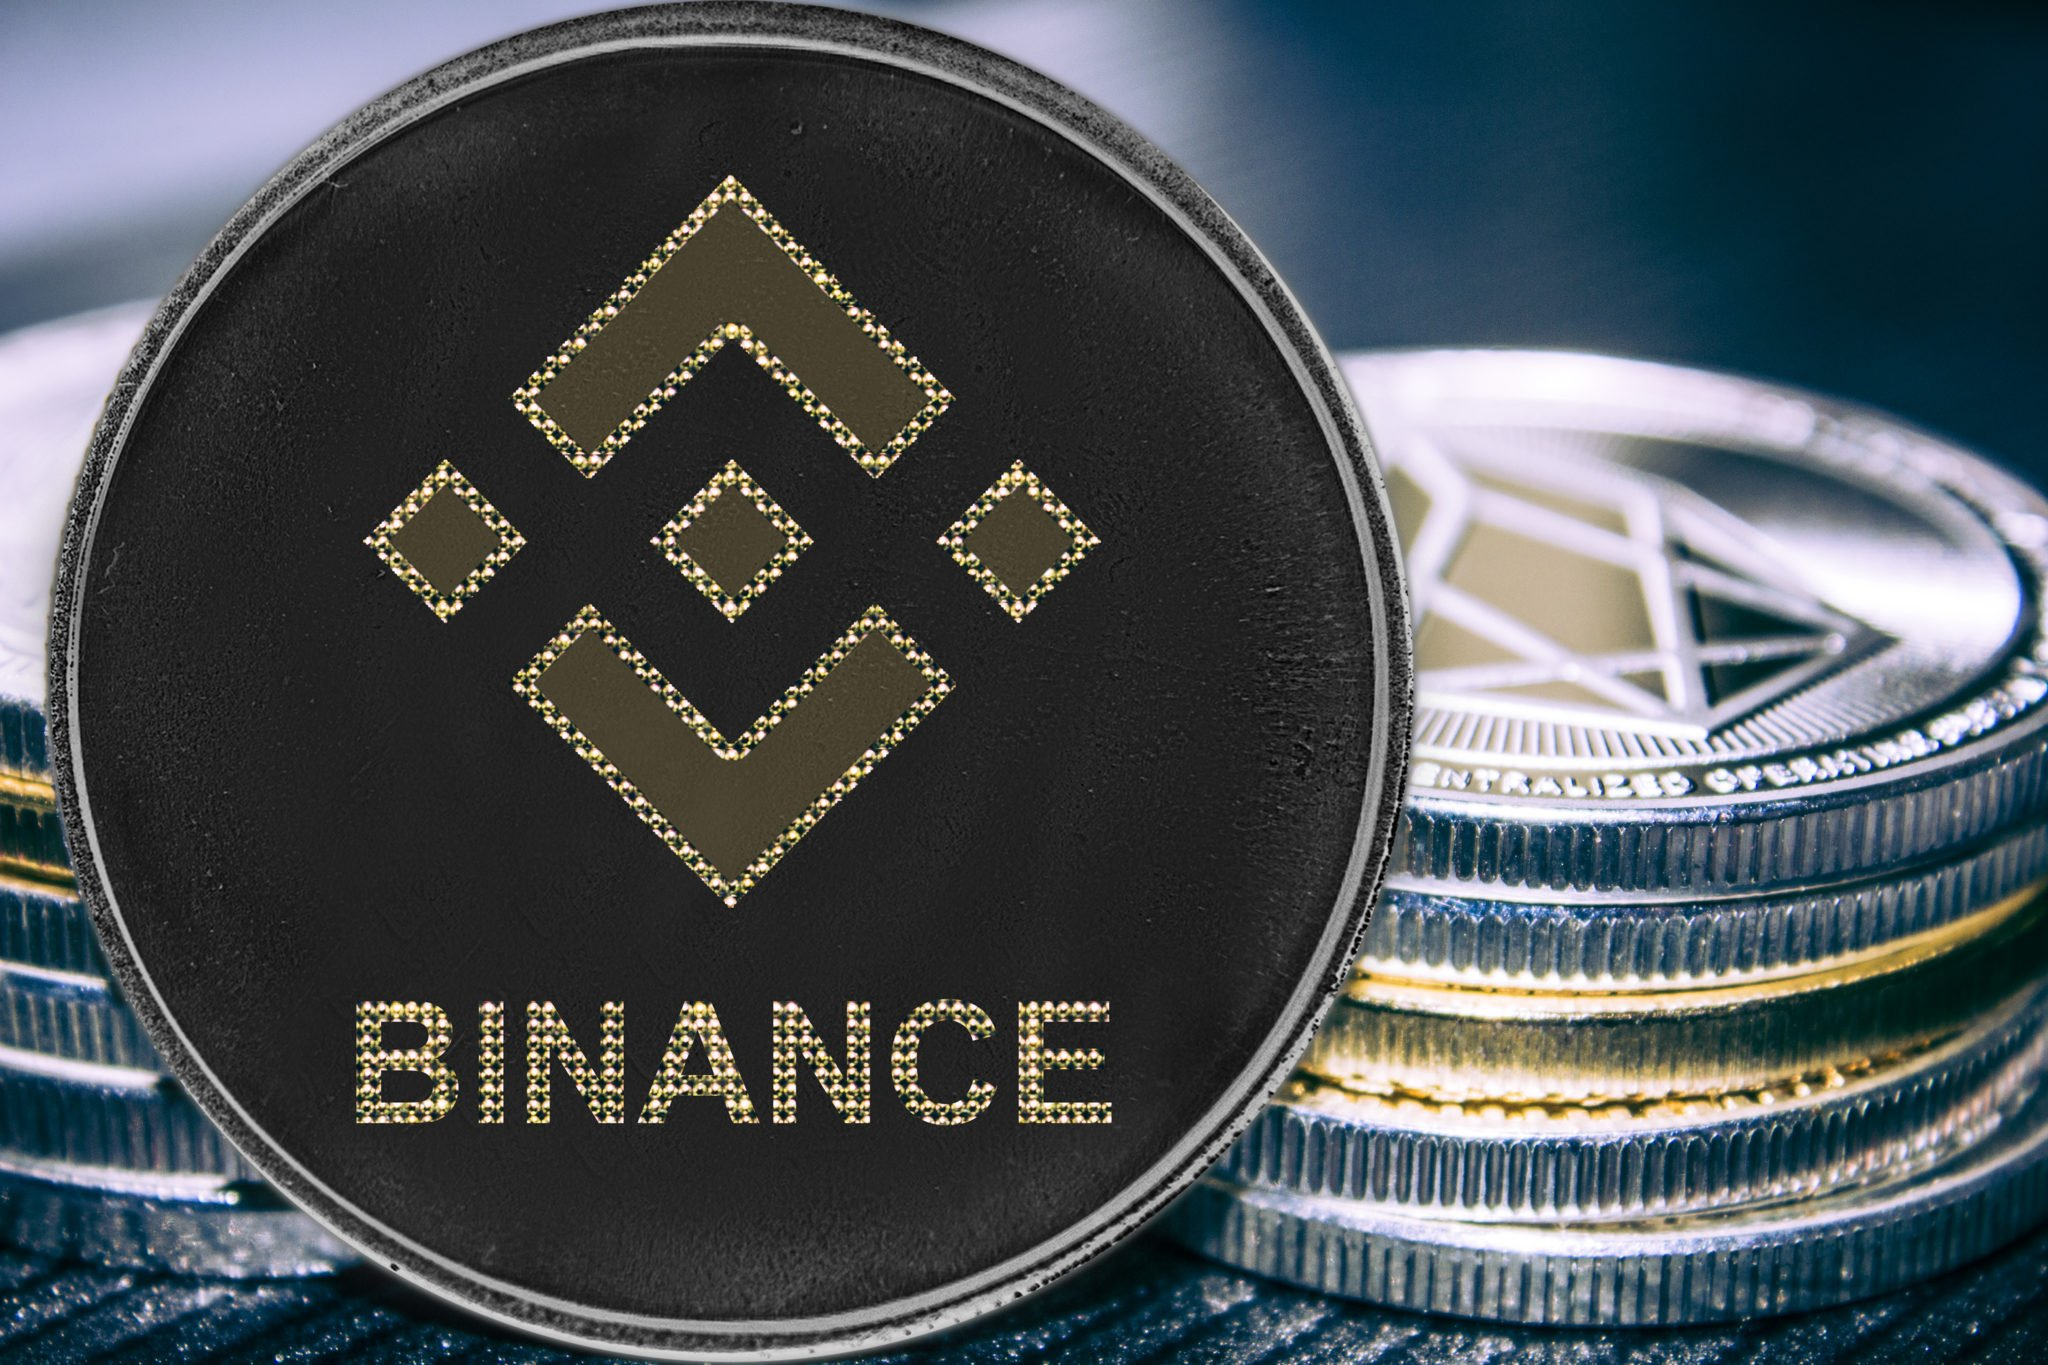 Coin cryptocurrency binance on the background of a stack of coins. BNB